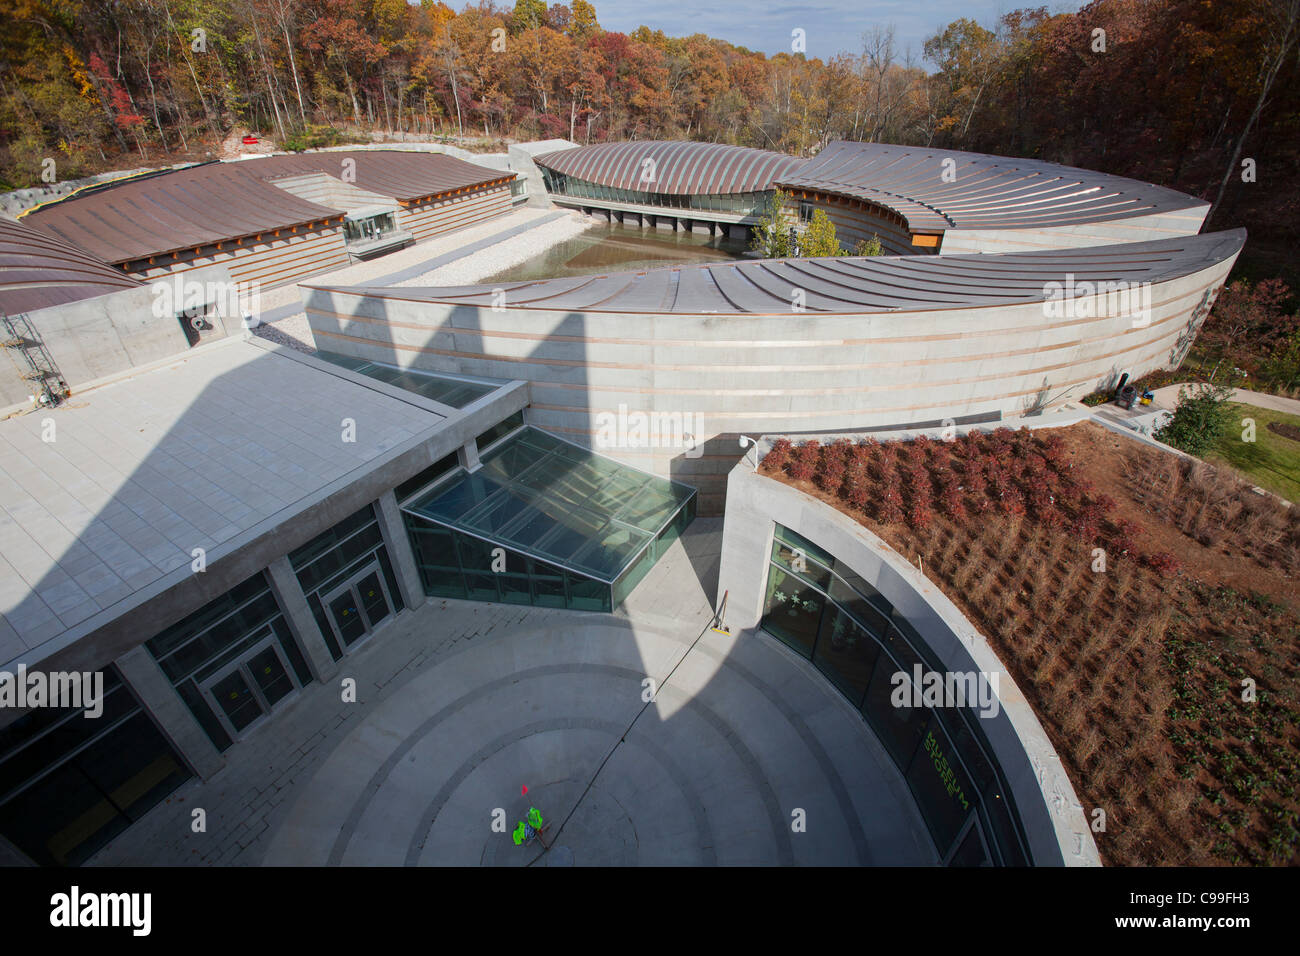 An overview of Crystal Bridges Museum of American Art in Bentonville, Arkansas, USA. - Stock Image